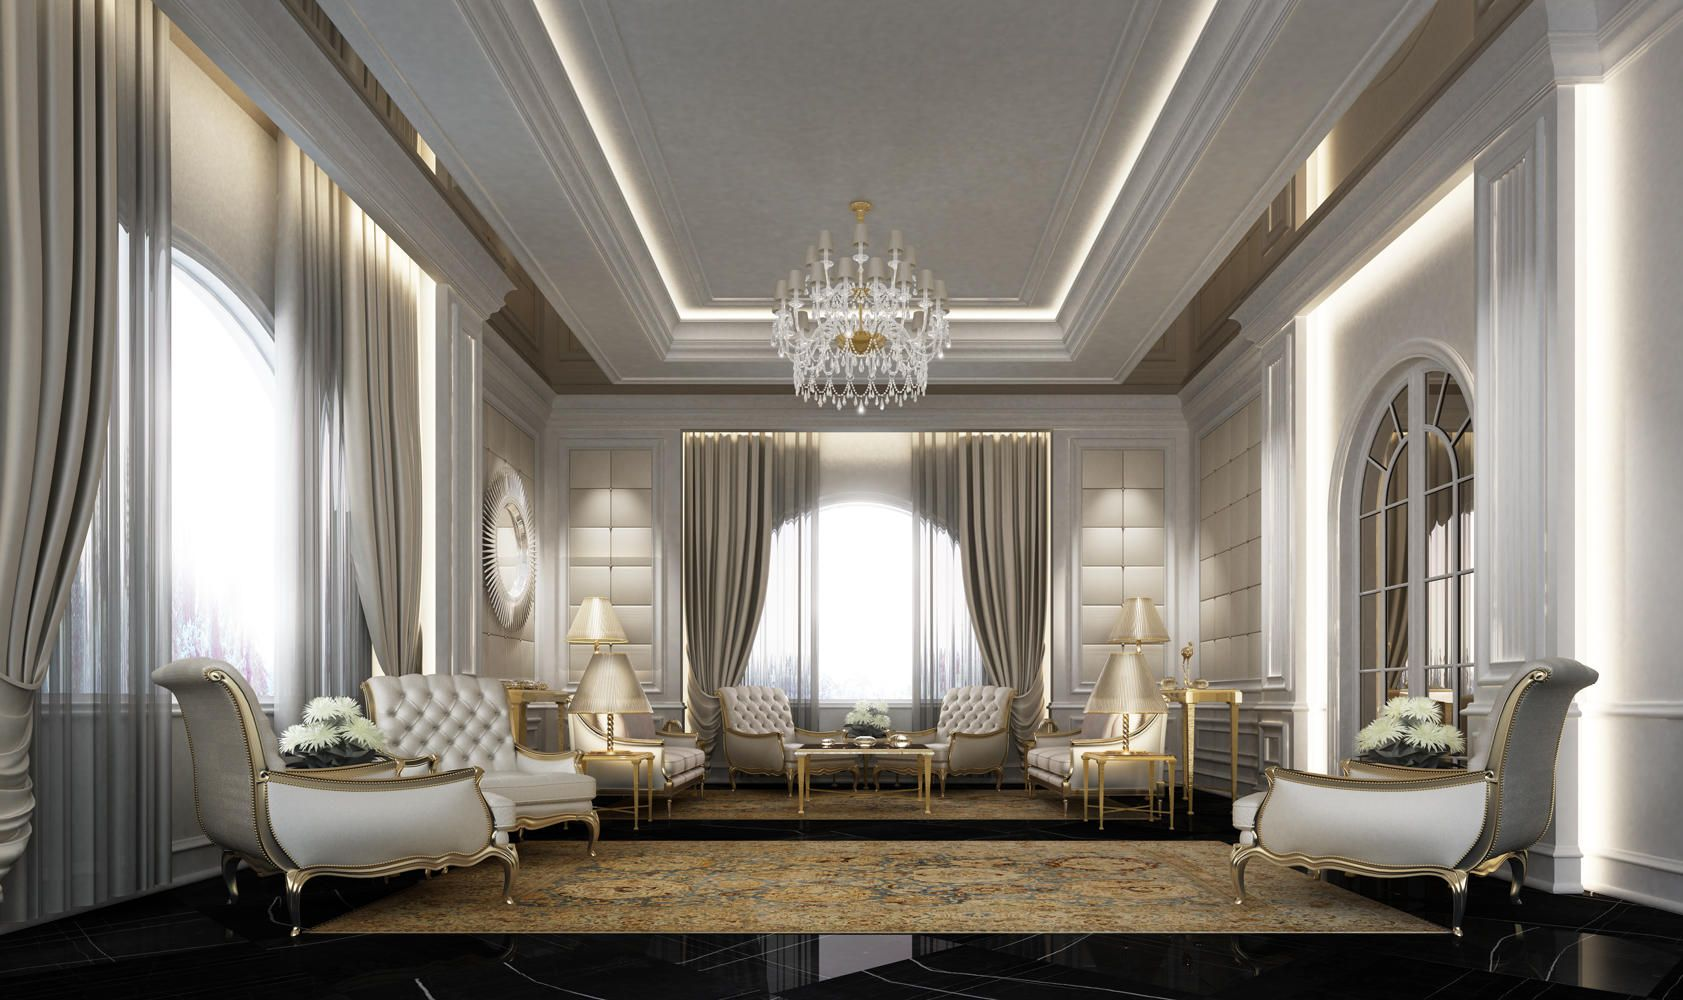 Arabic majlis designs ions design interior design for Interior decoration companies in dubai